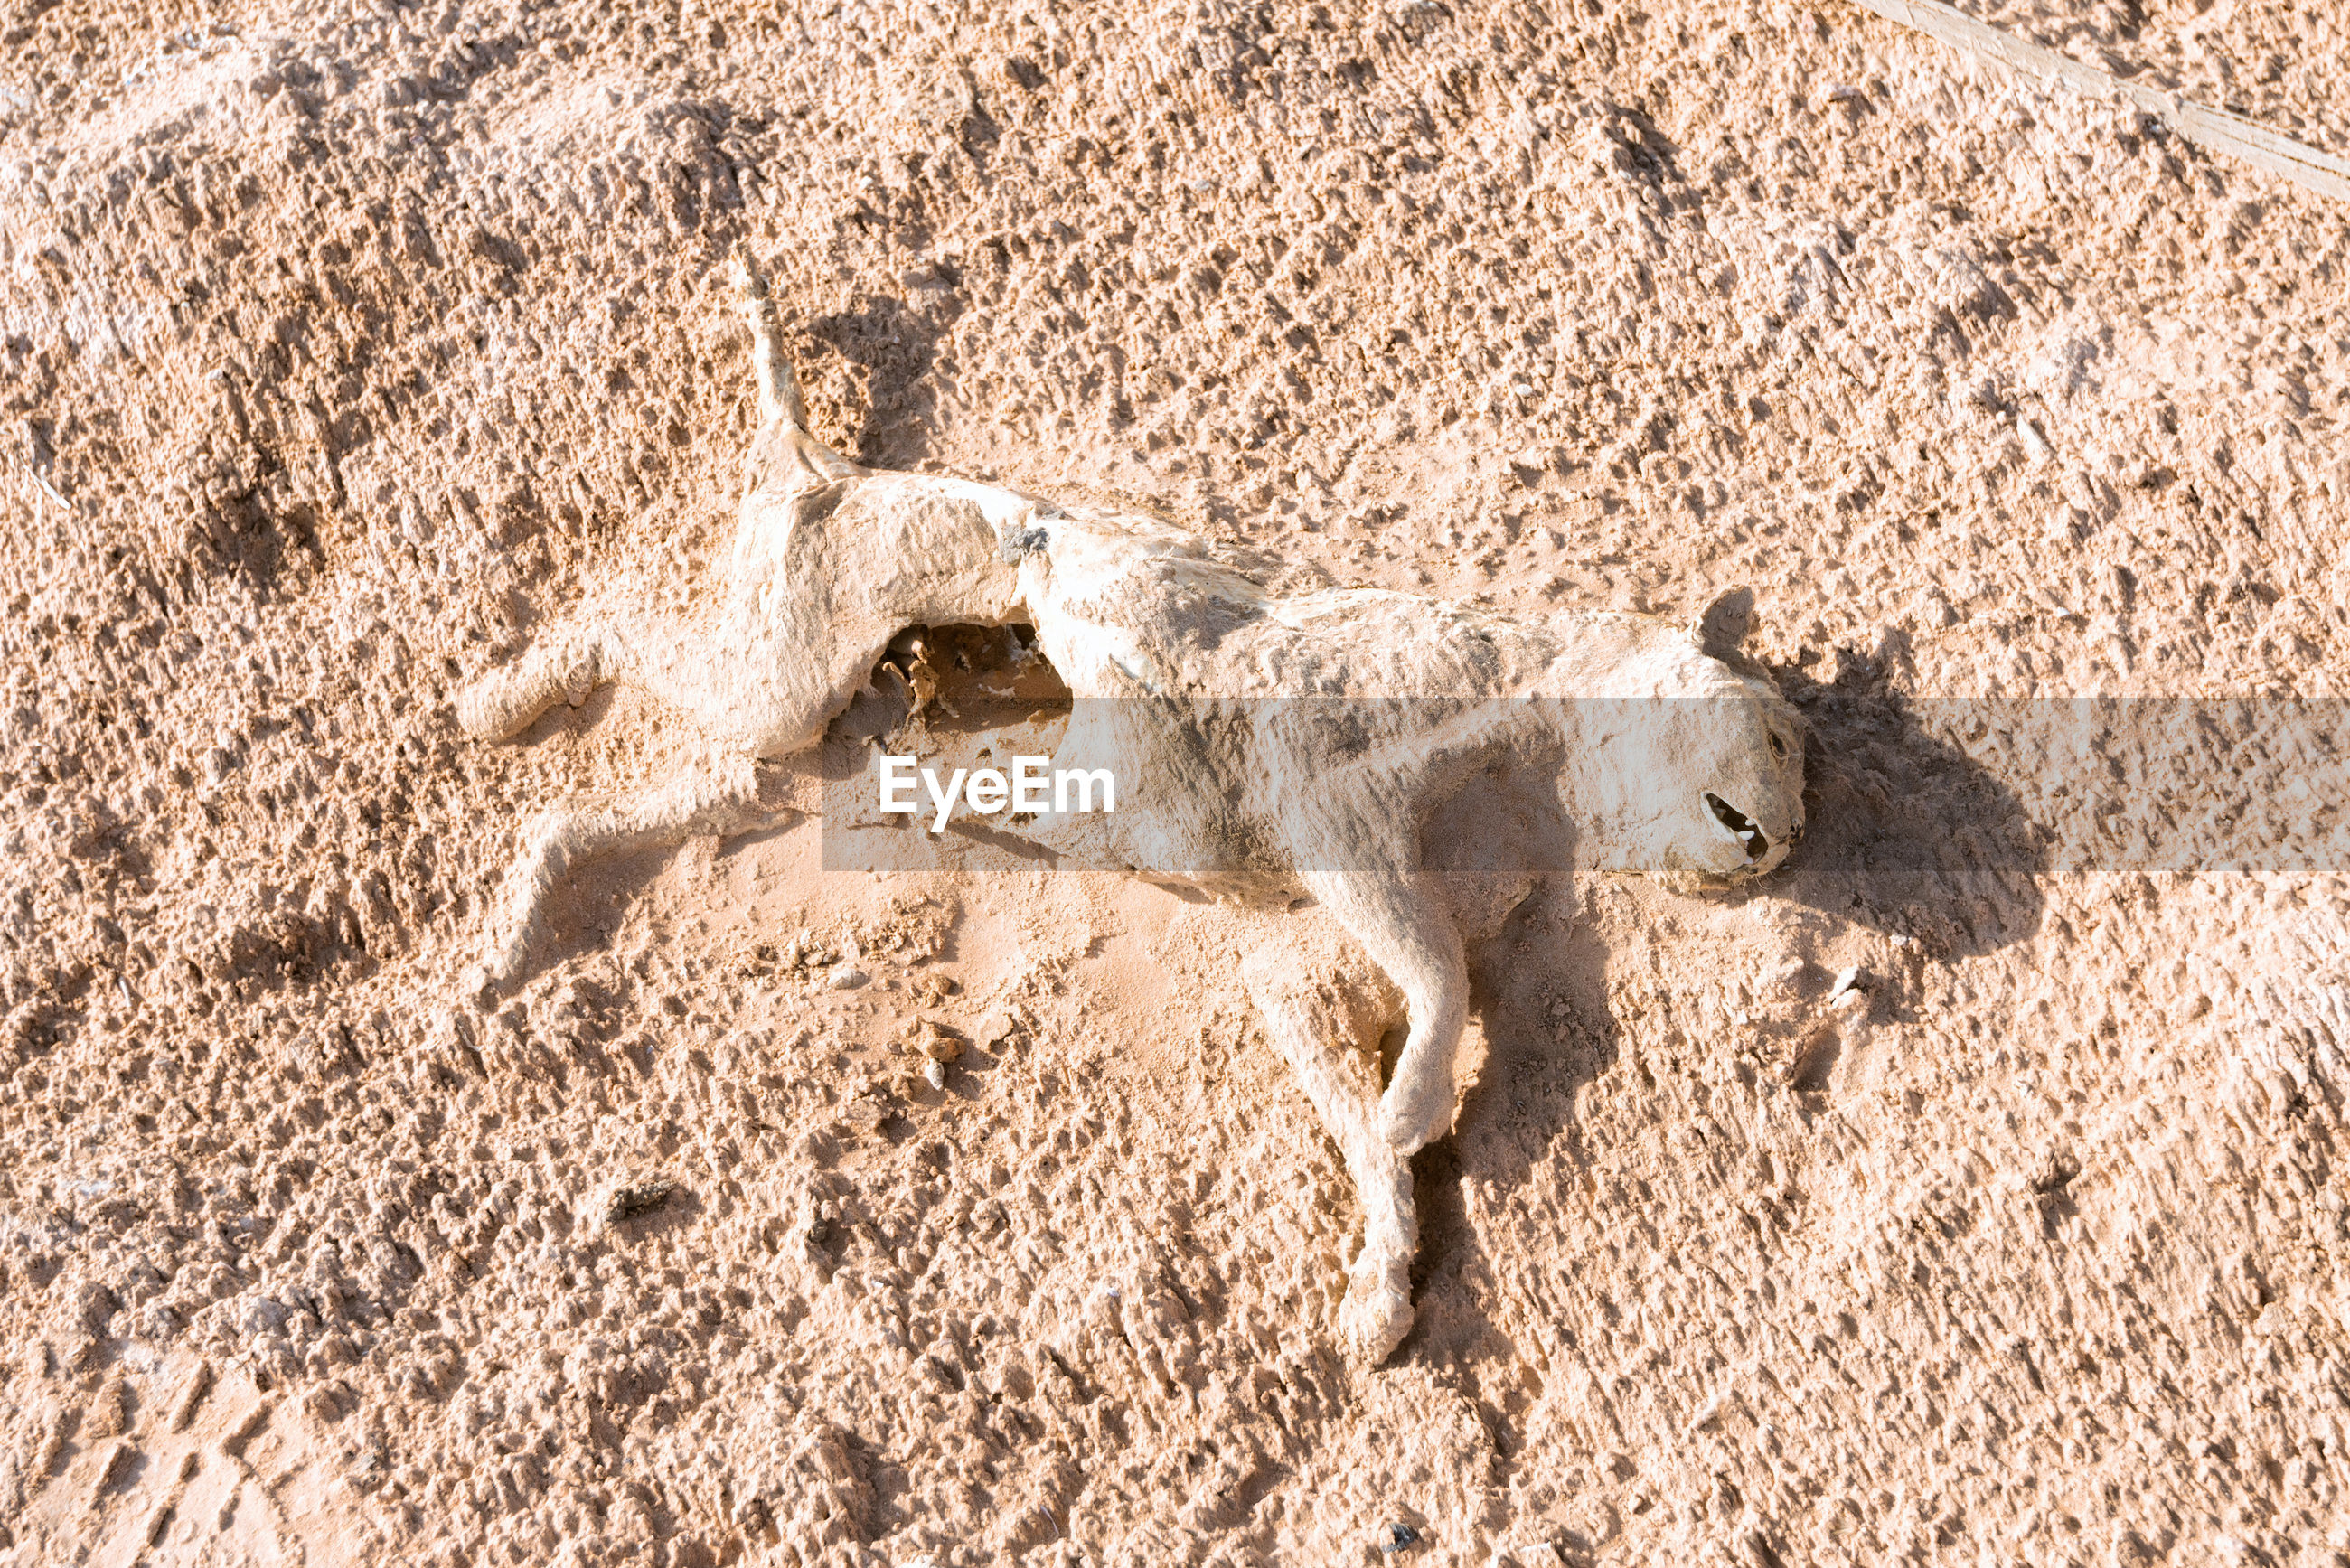 High angle view of dead animal in desert